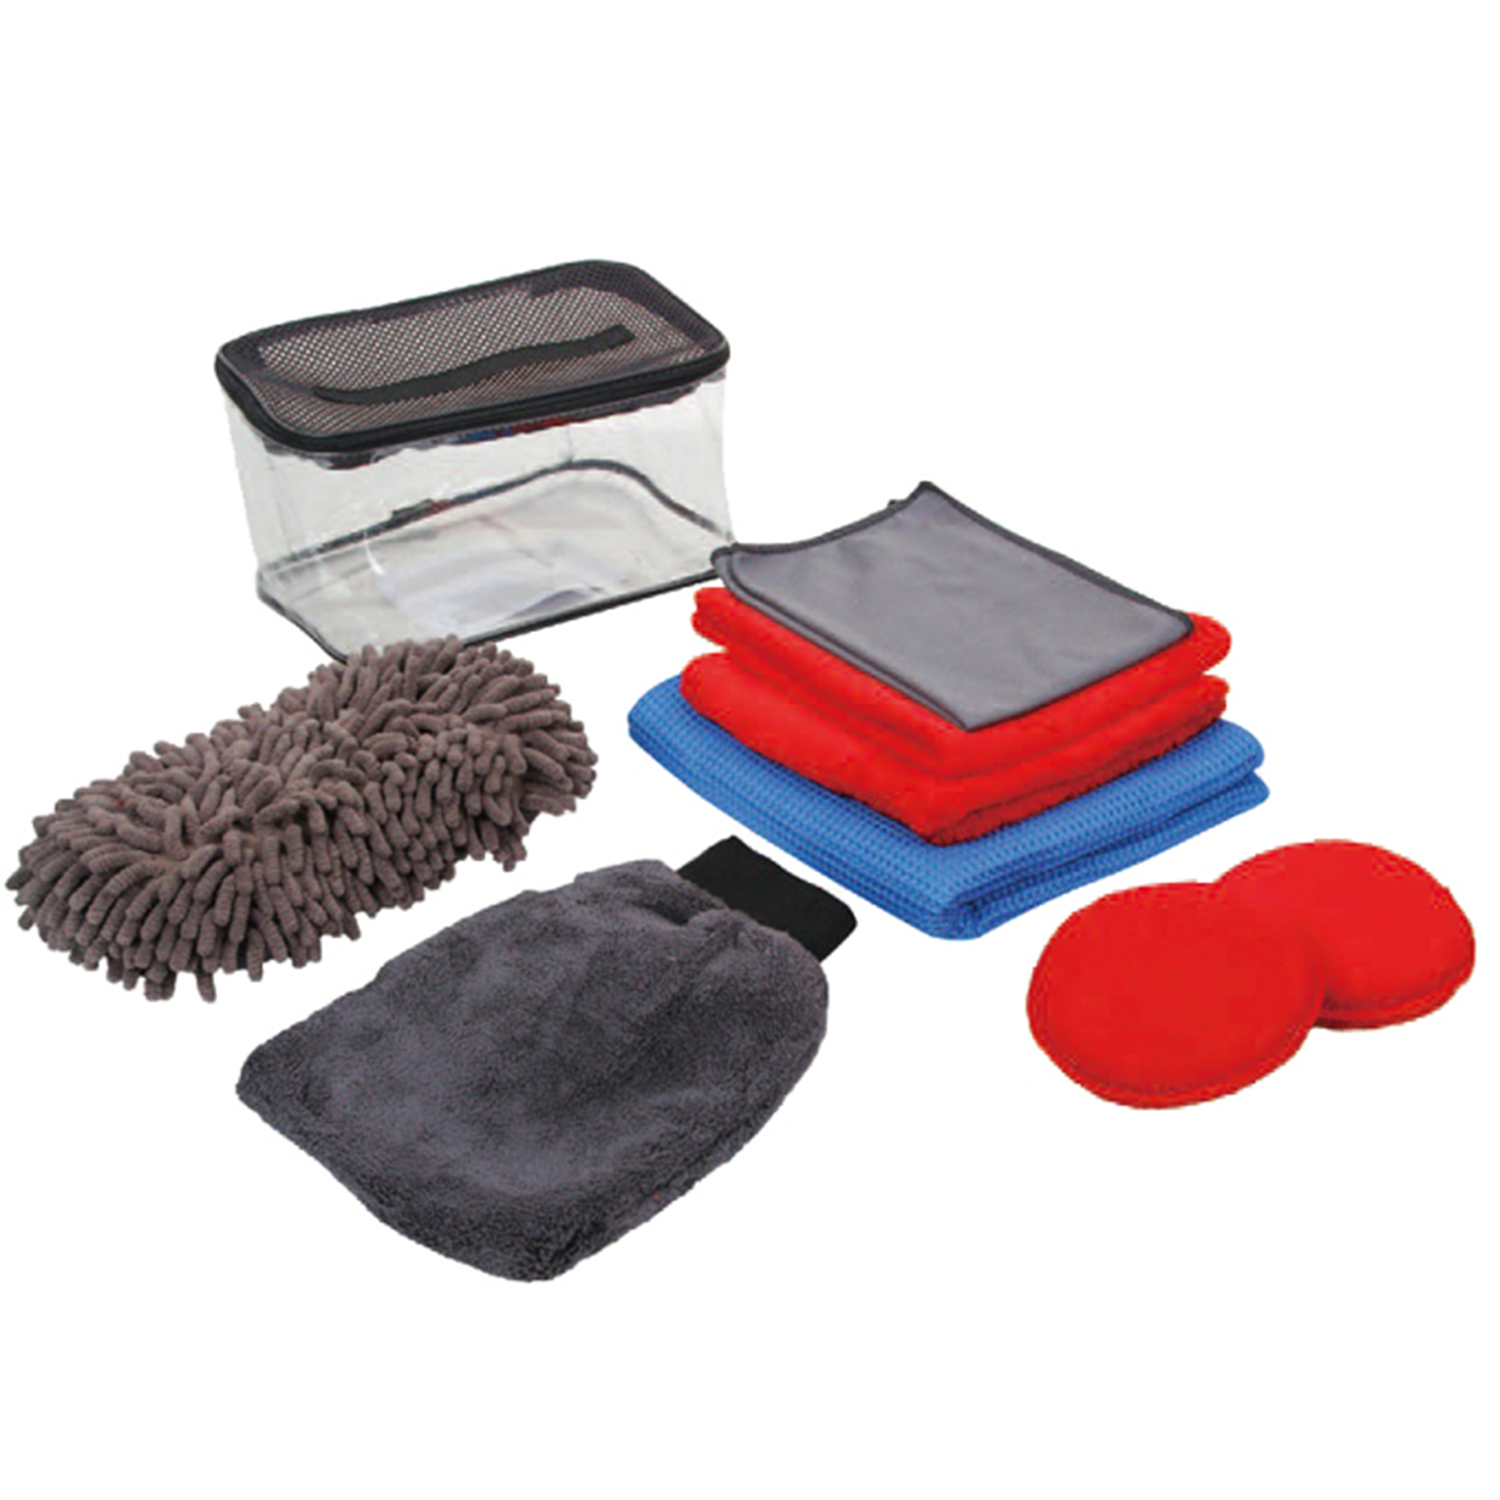 Car cleaning products with 2 waxing pads, wash mitt car cleaning